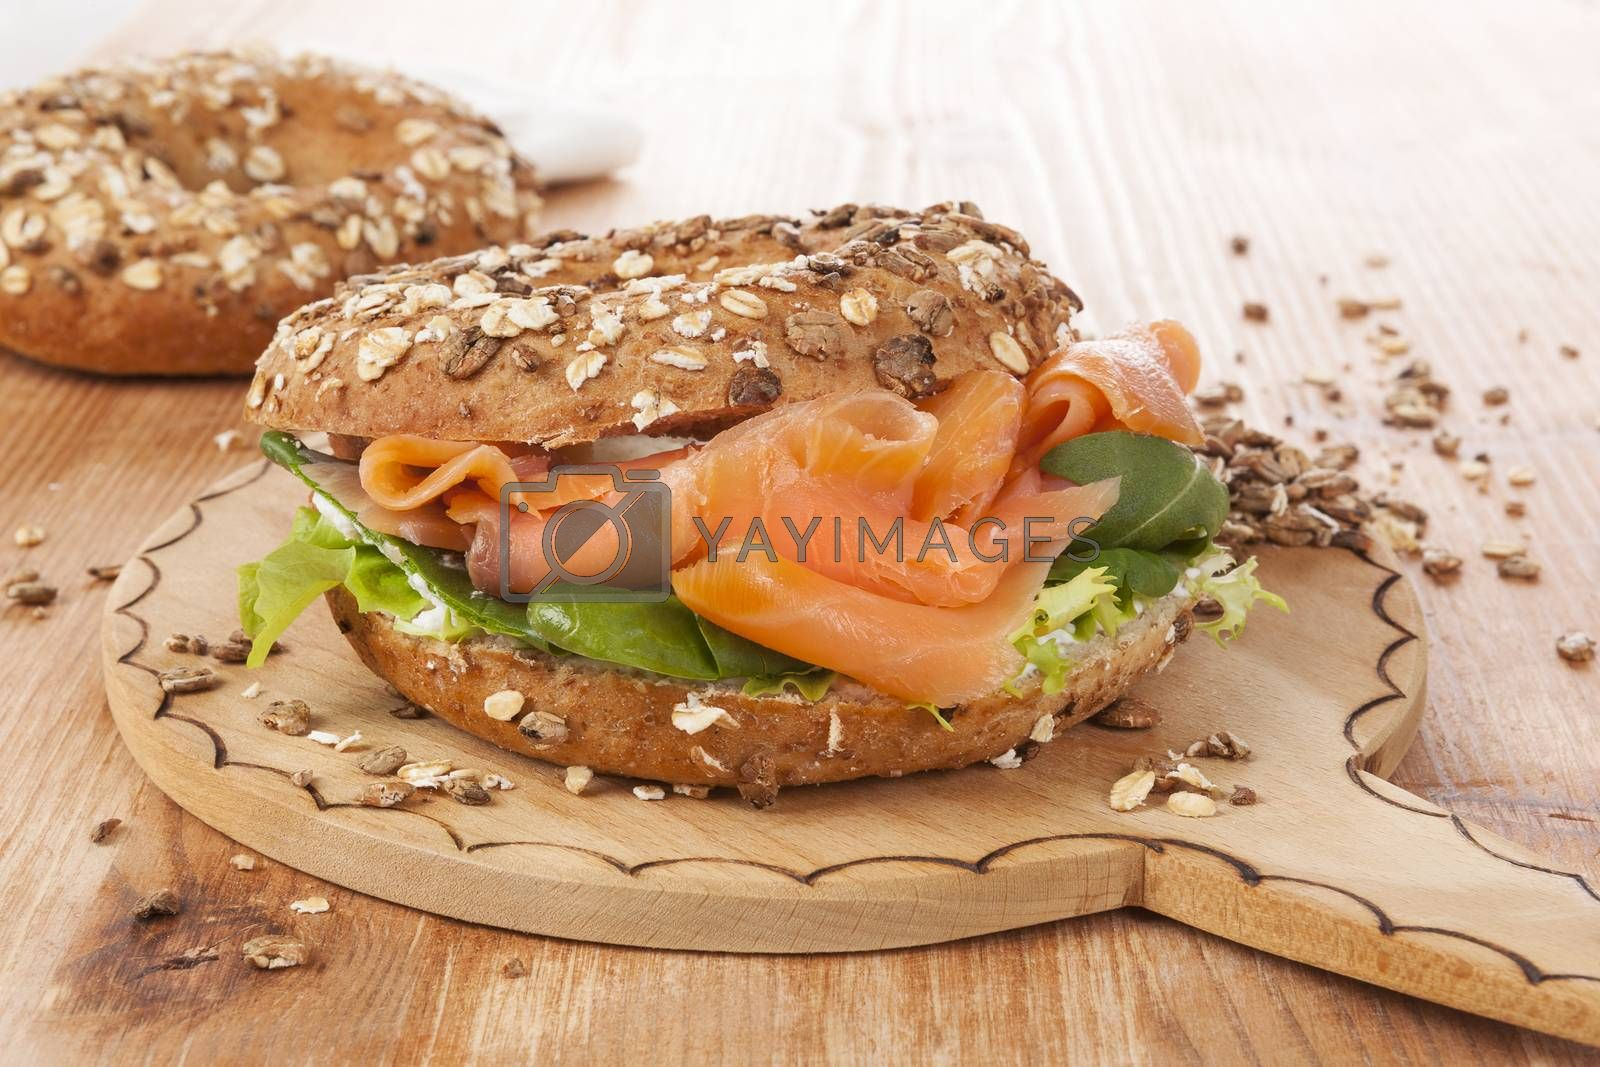 Salmon whole grain bagel on wooden kitchen board on wooden background. Traditional bagel eating.